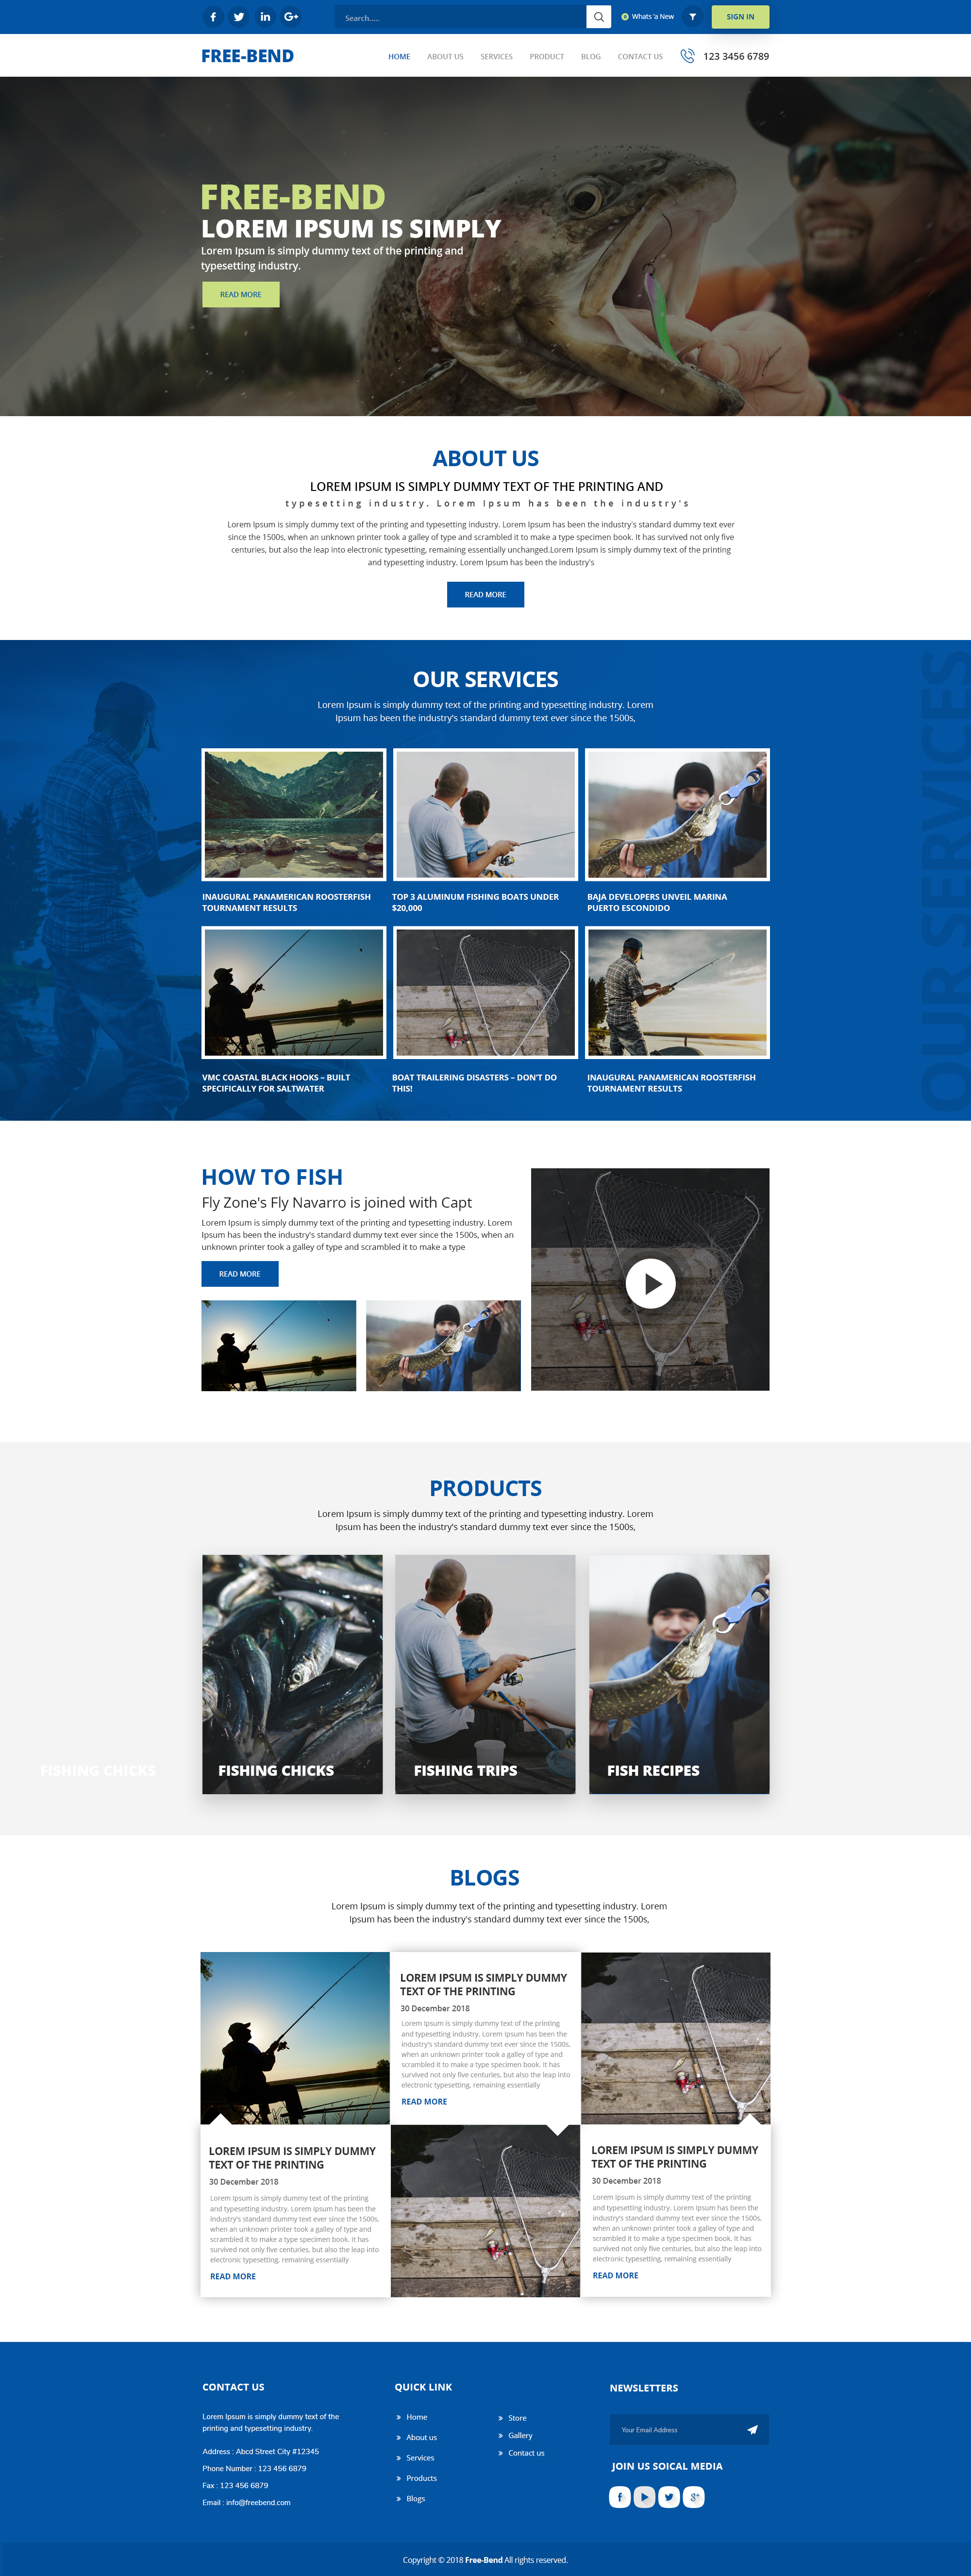 responsive gallery template free download